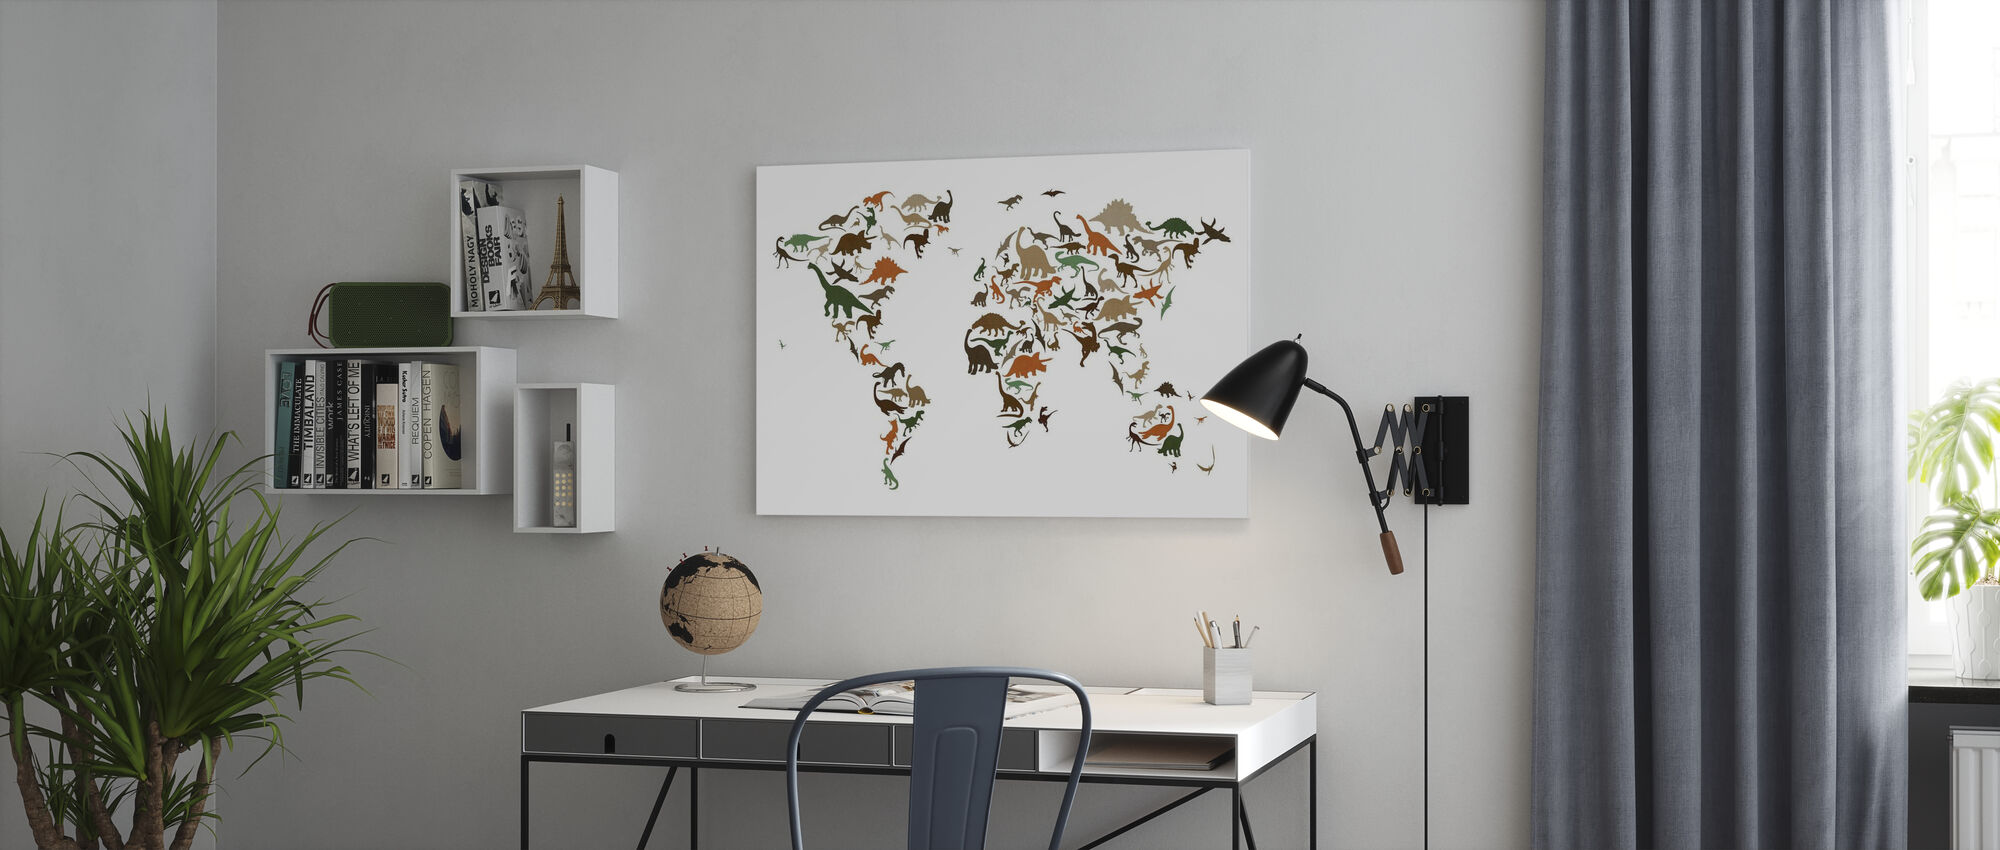 Dinosaur World Map Multicolor - Canvas print - Office